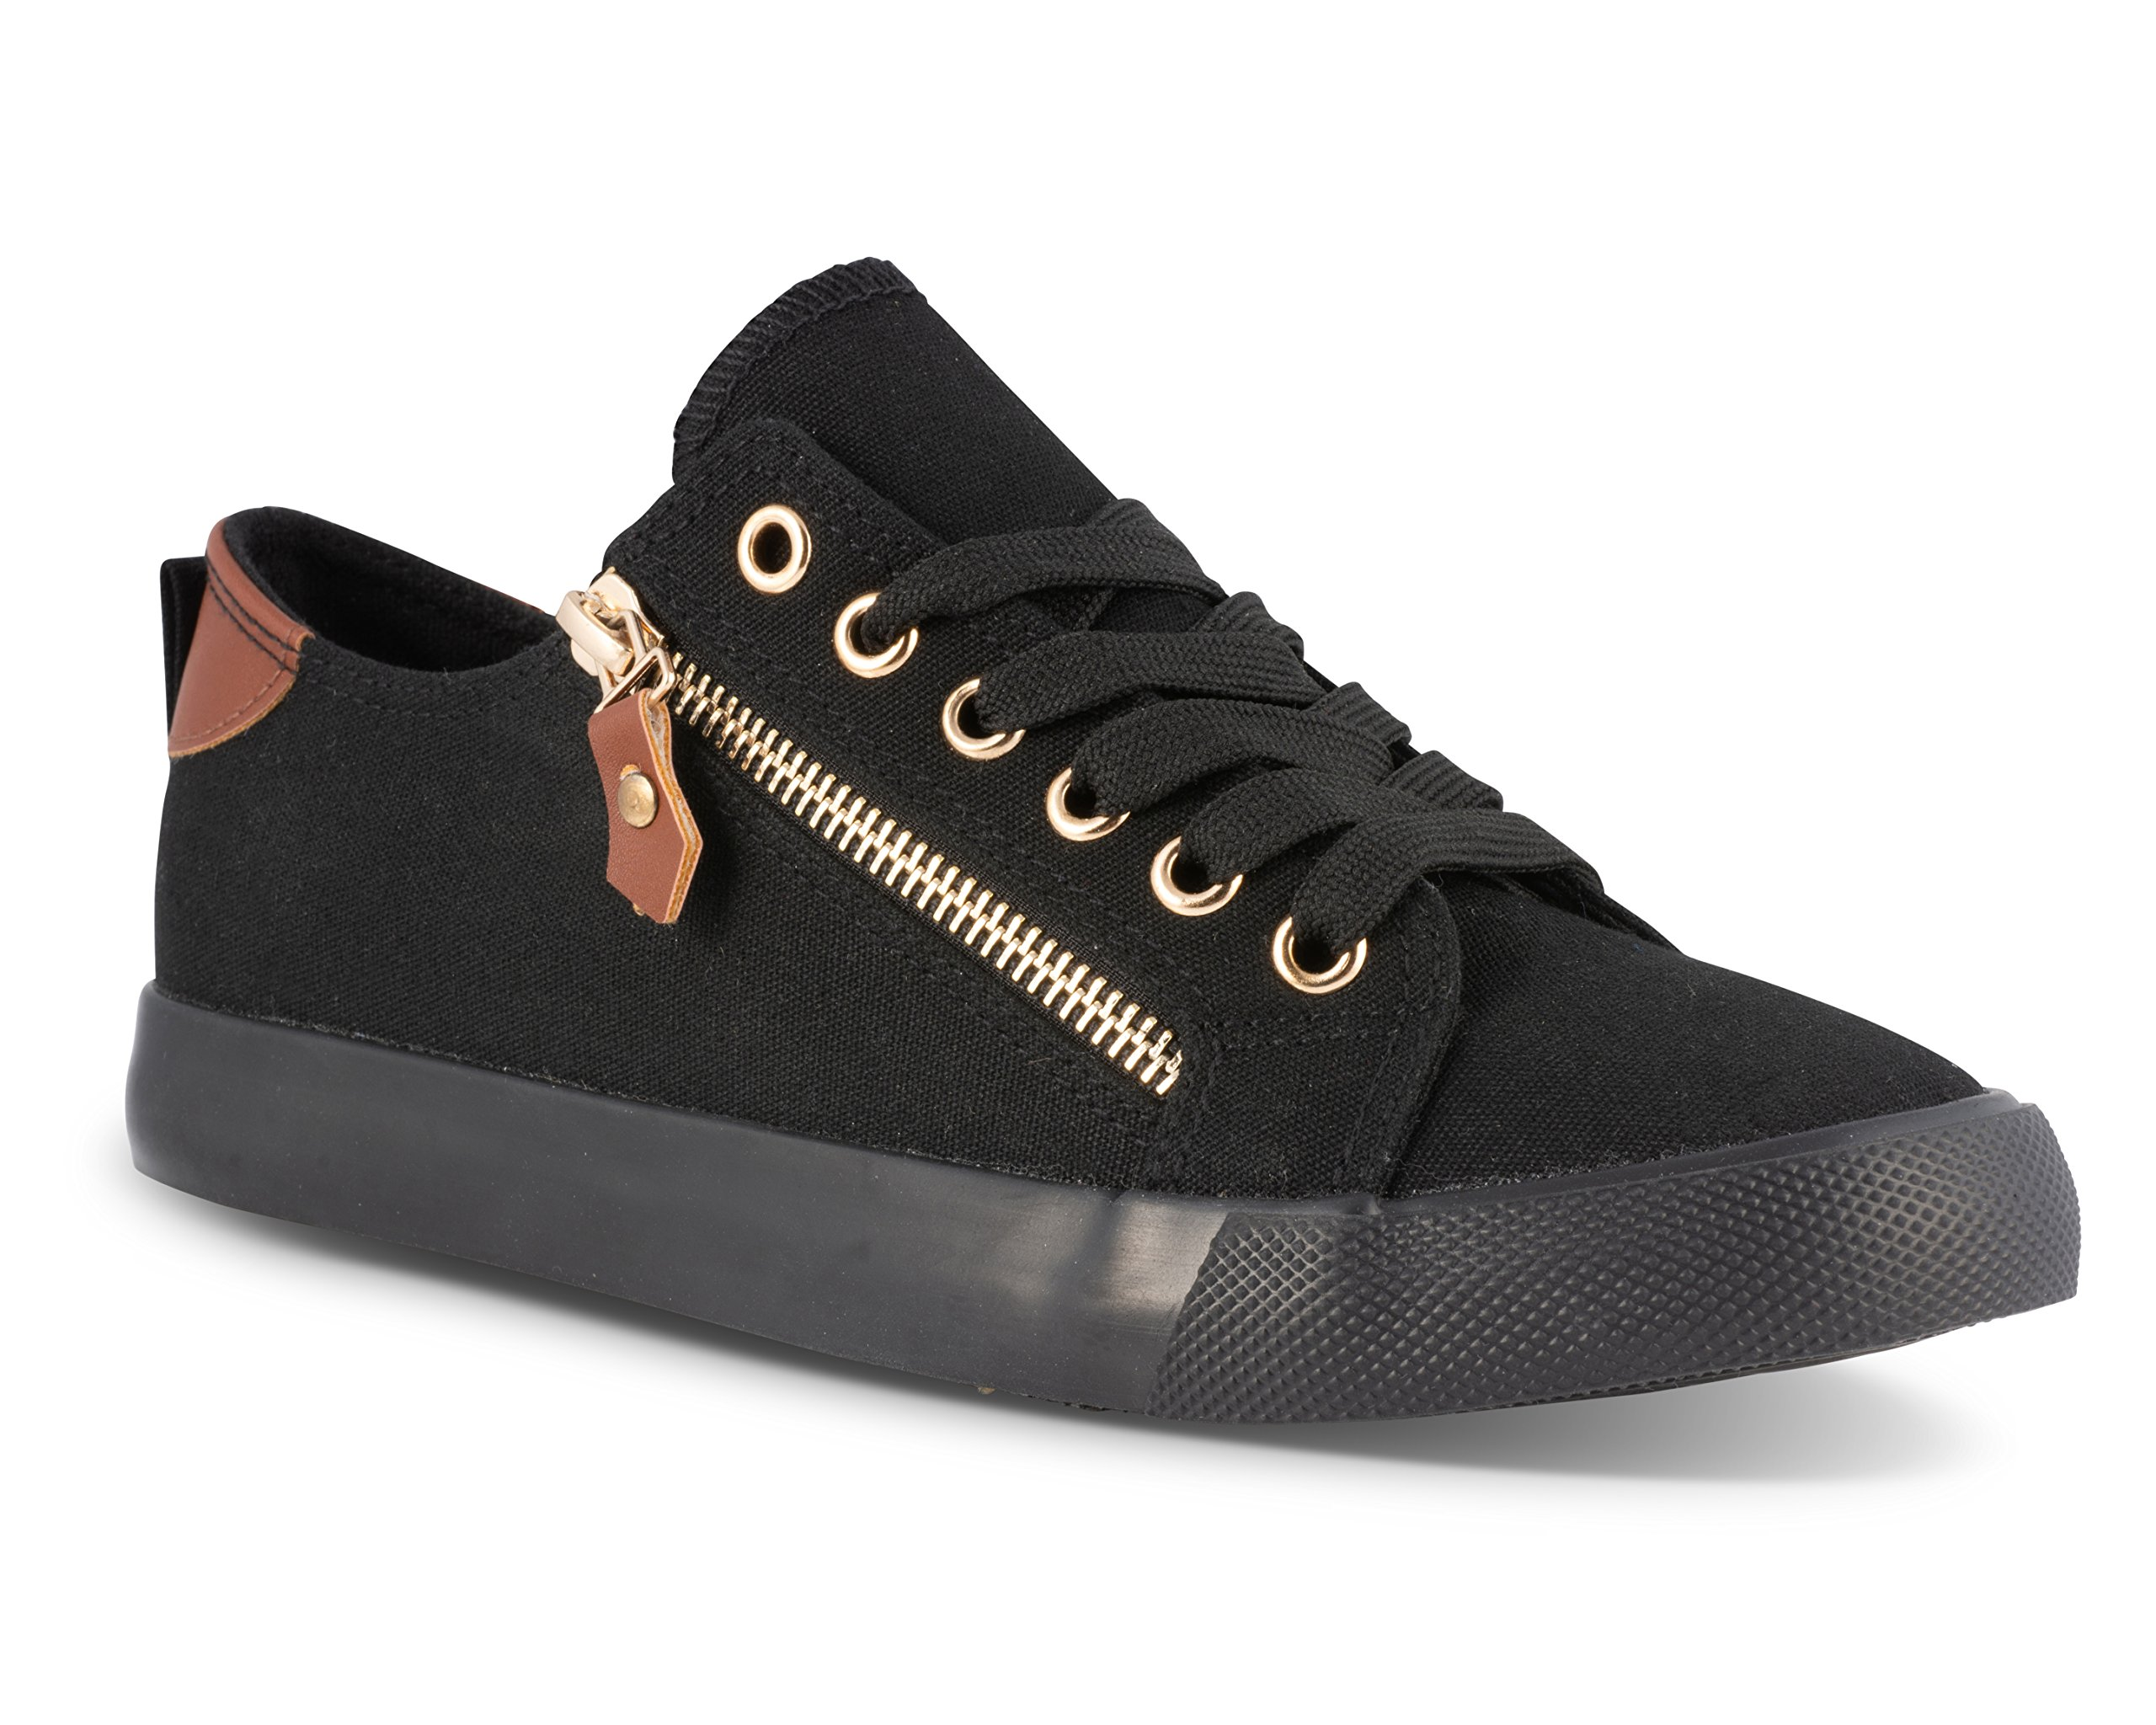 Twisted Women's KIX Canvas Sneakers with Decorative Zippers - KIXLO213BLACK, Size 8